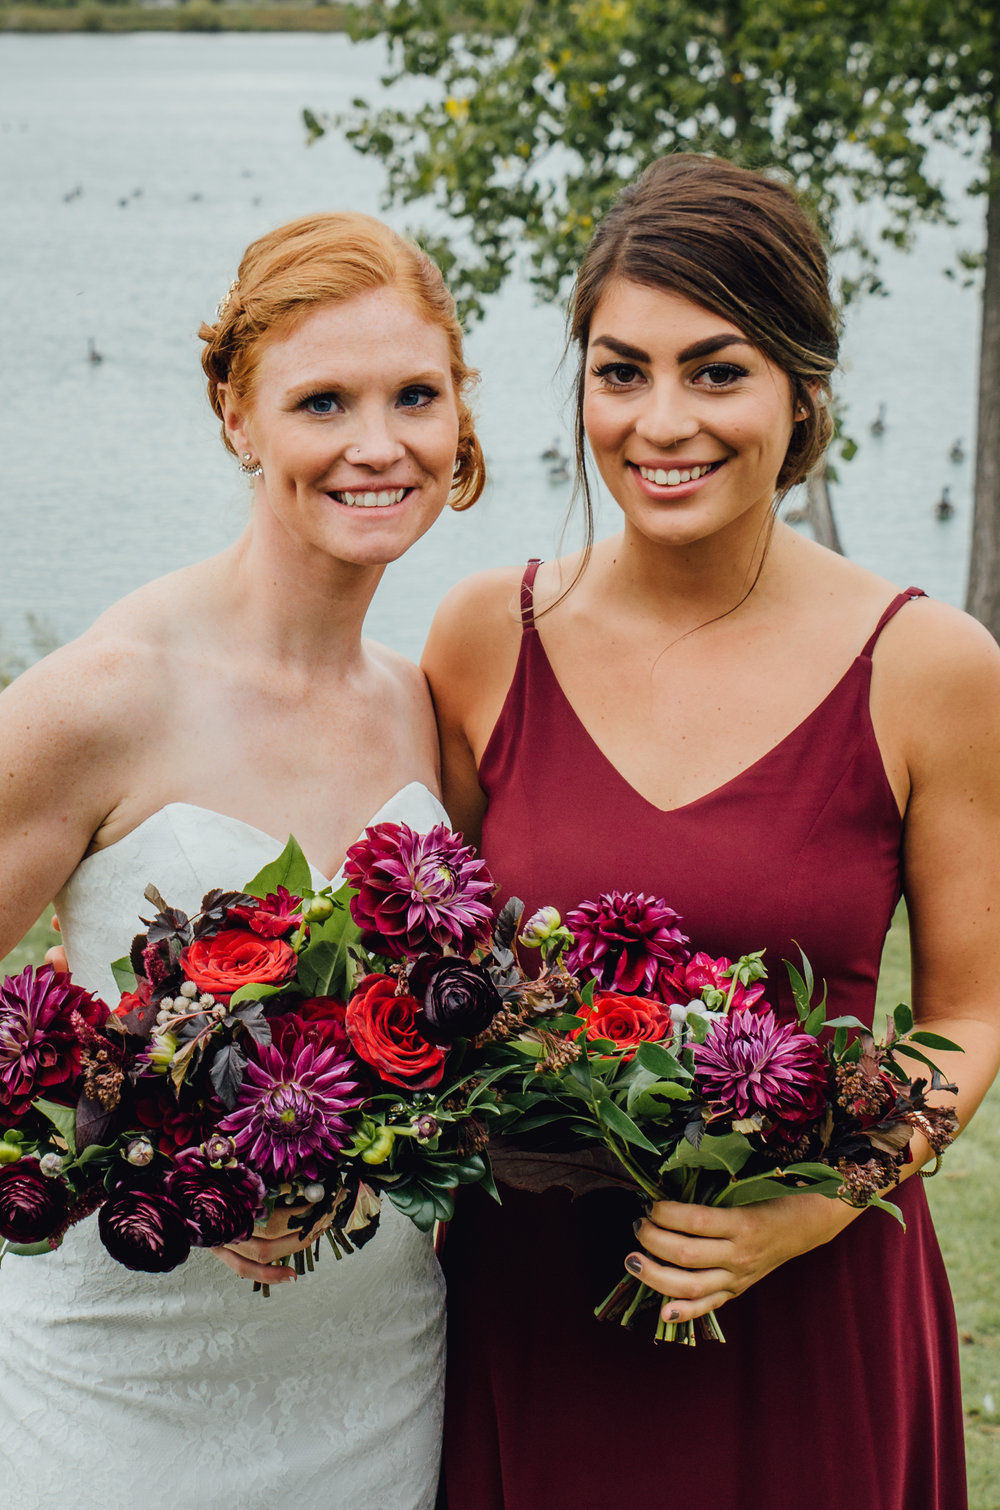 Burgundy Bridesmaid Dress - Winnipeg Wedding Flowers